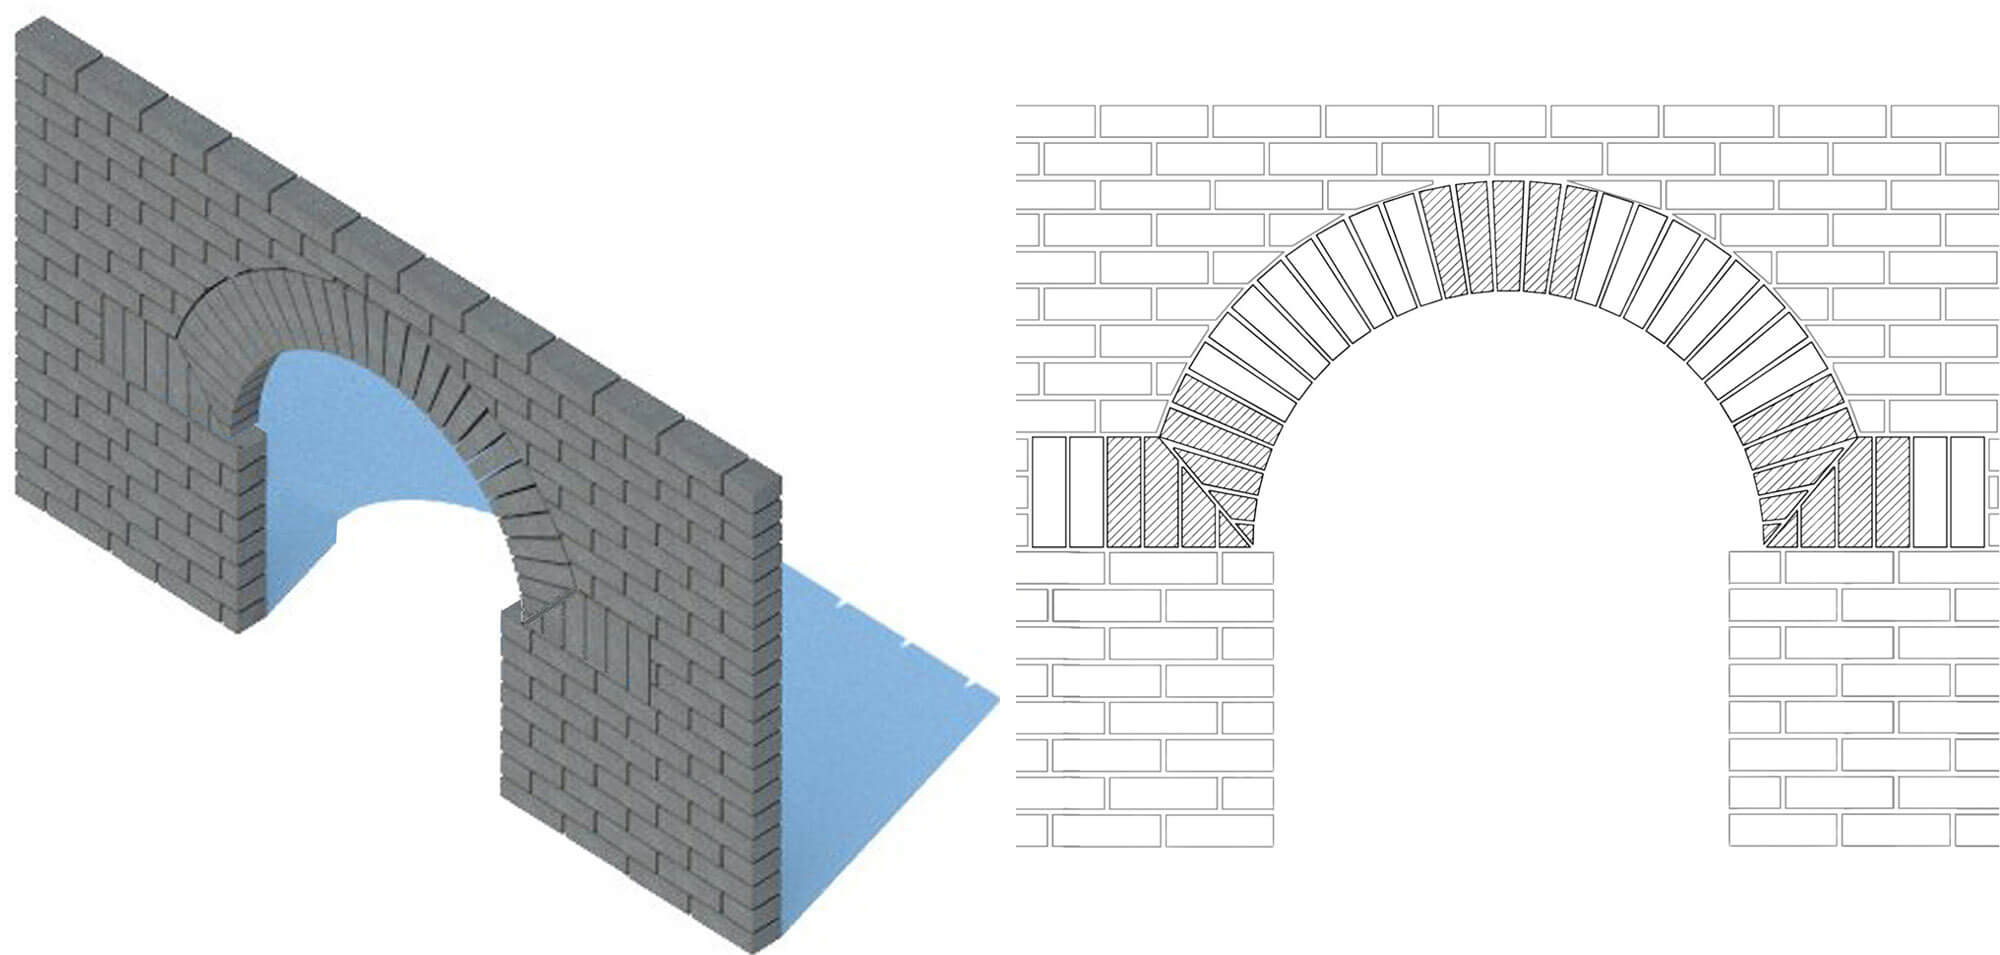 Figure 3.3 Venetian Arch scale 1 20 elevation